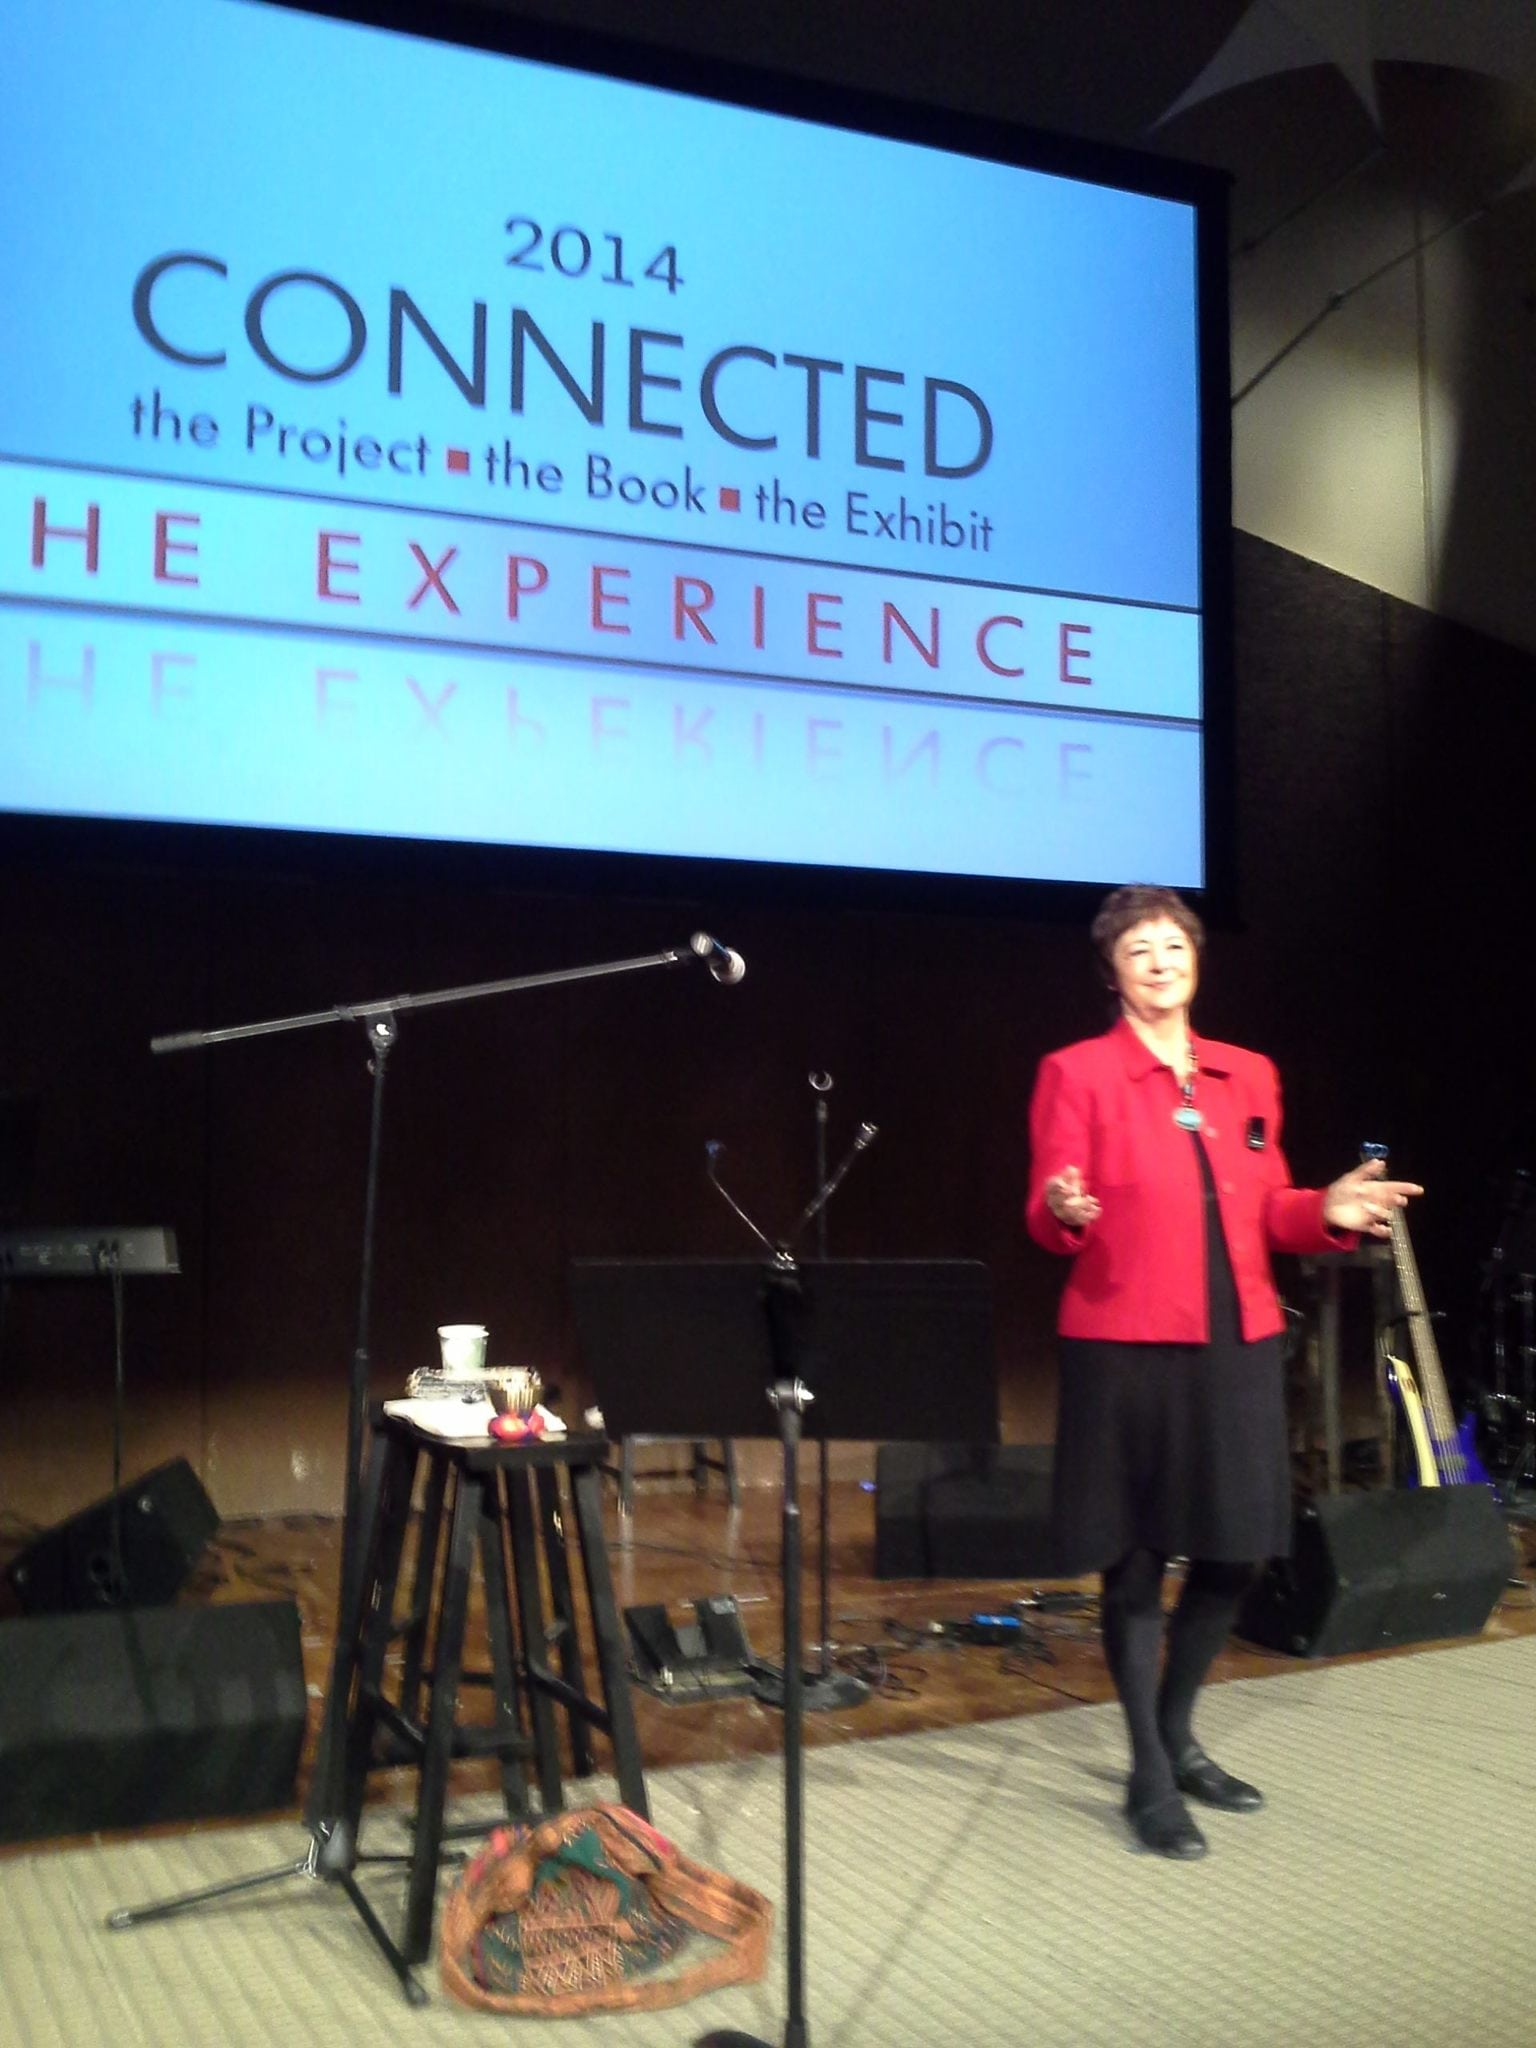 Kathy Perry at Connected Conference